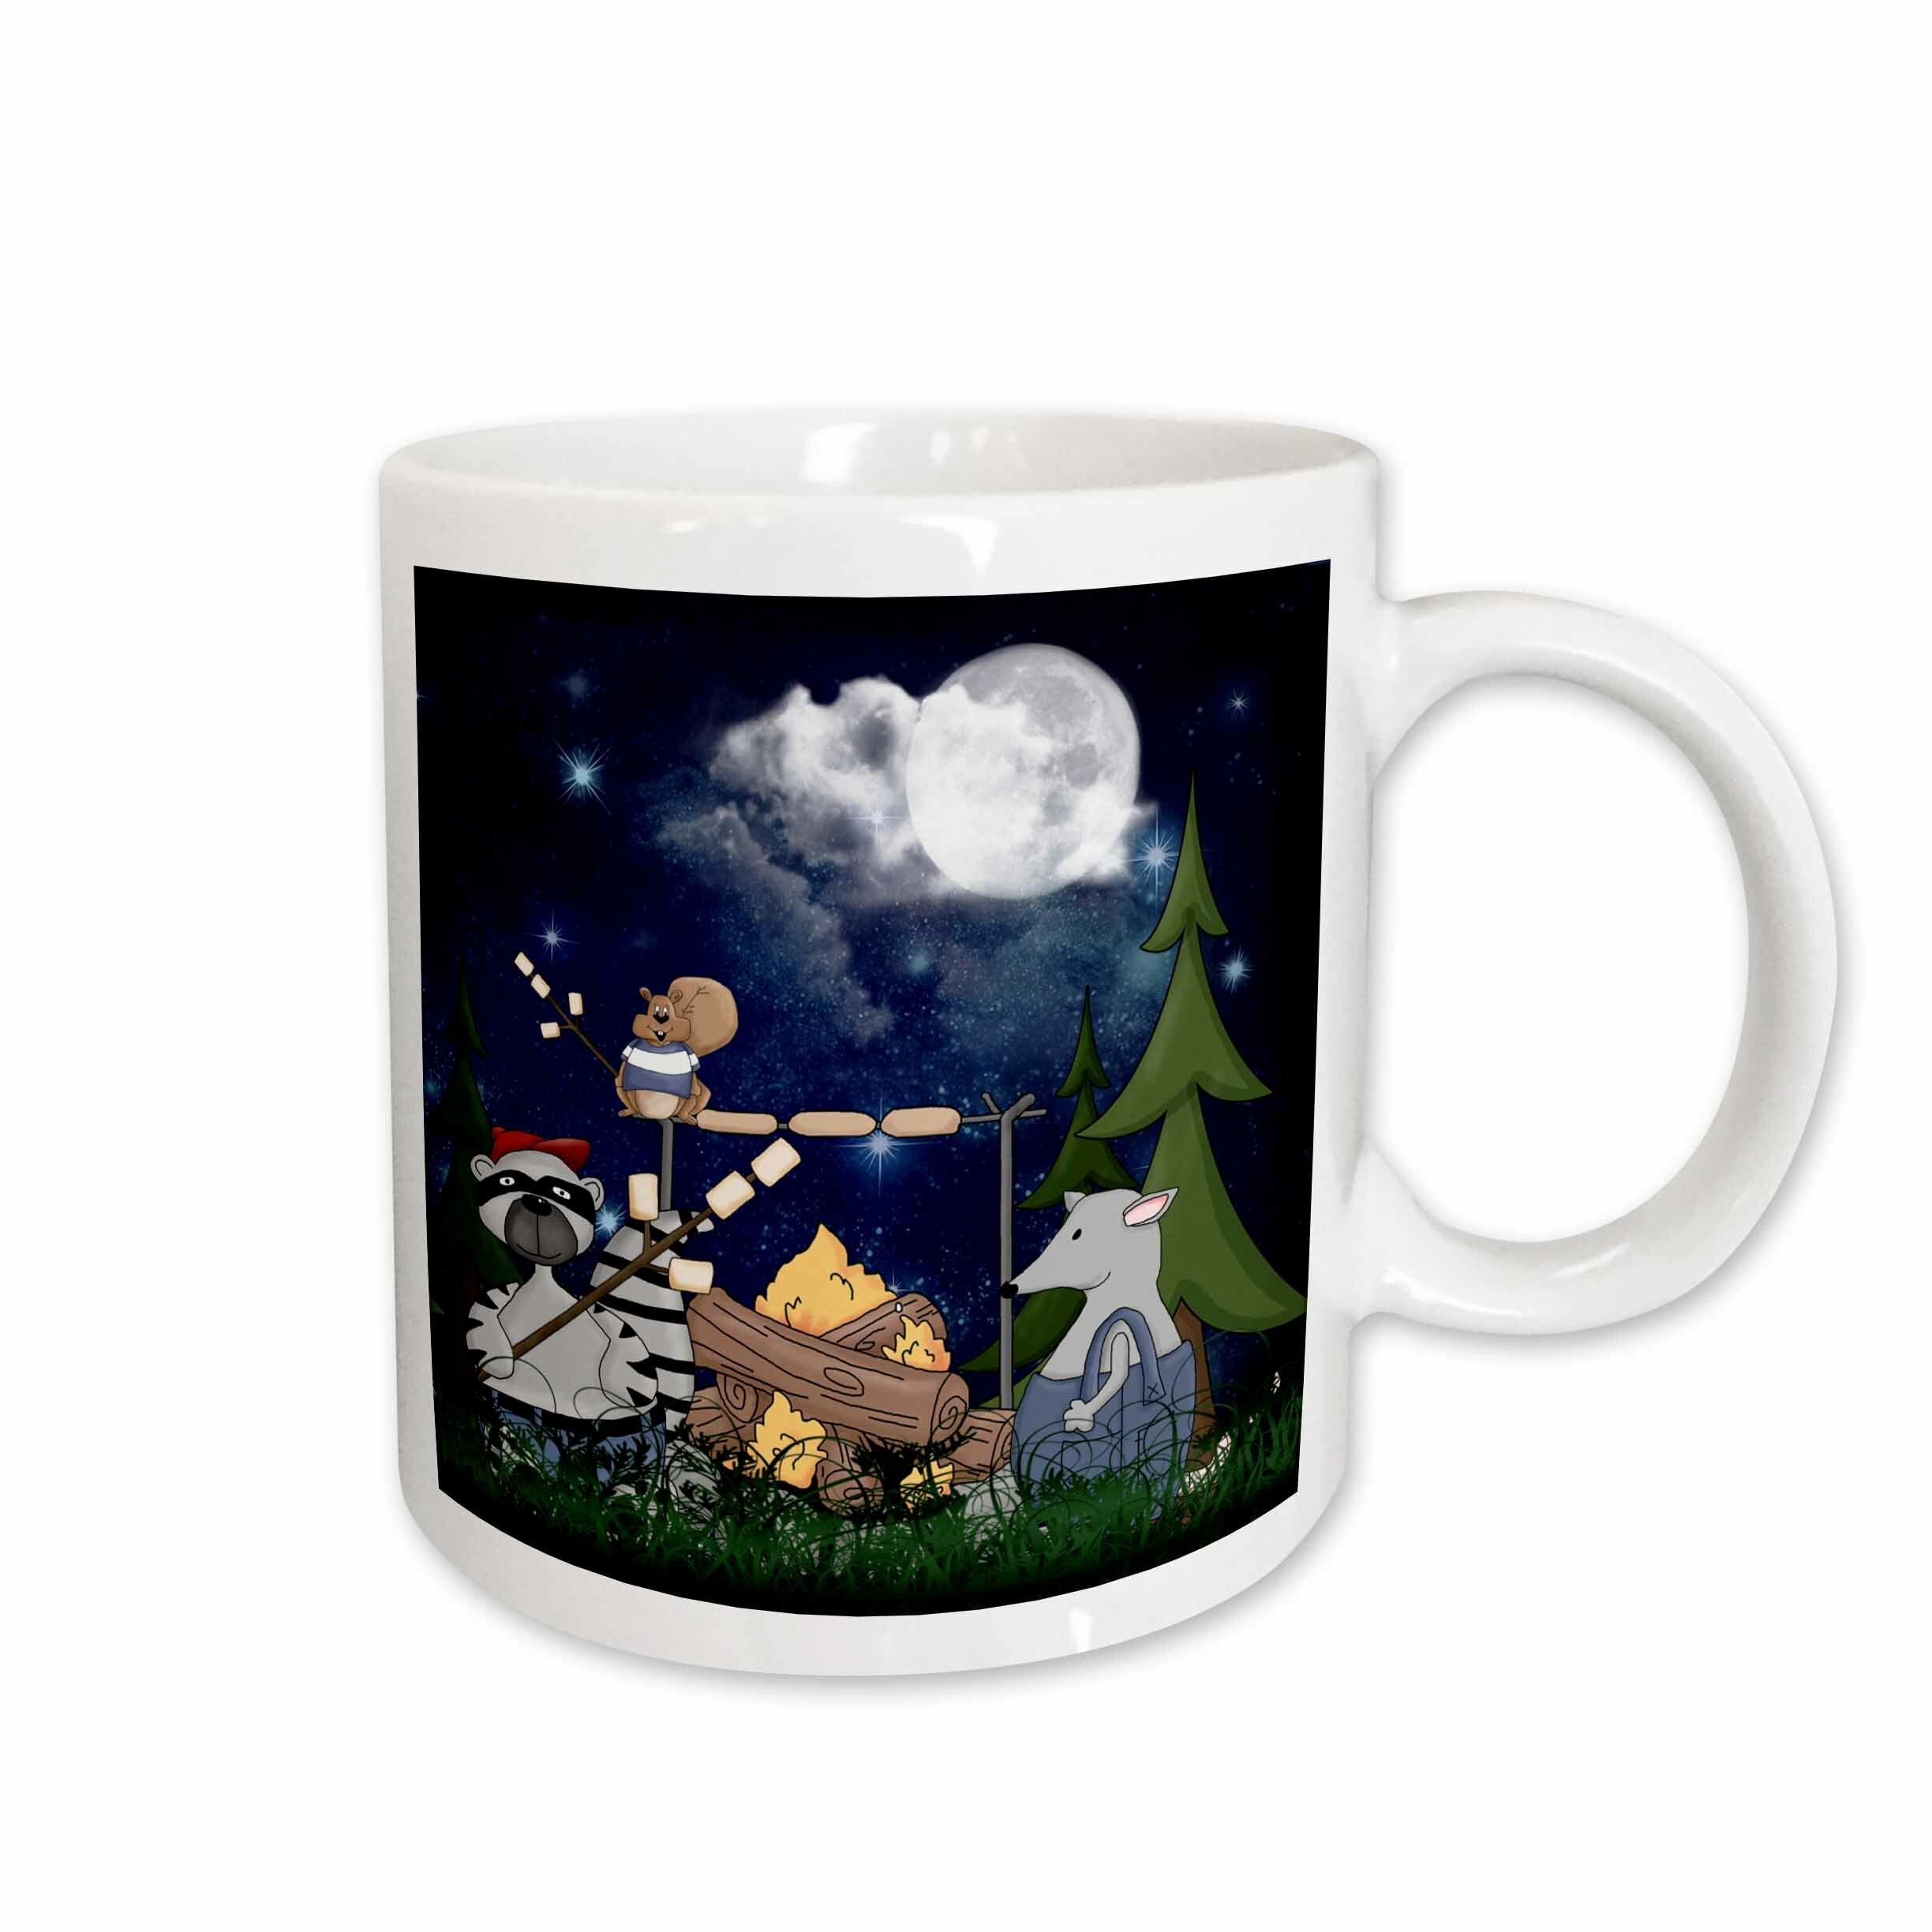 East Urban Home Raccoon Squirrel And Opossum Camping With A Campfire And Marshmallows Coffee Mug Wayfair